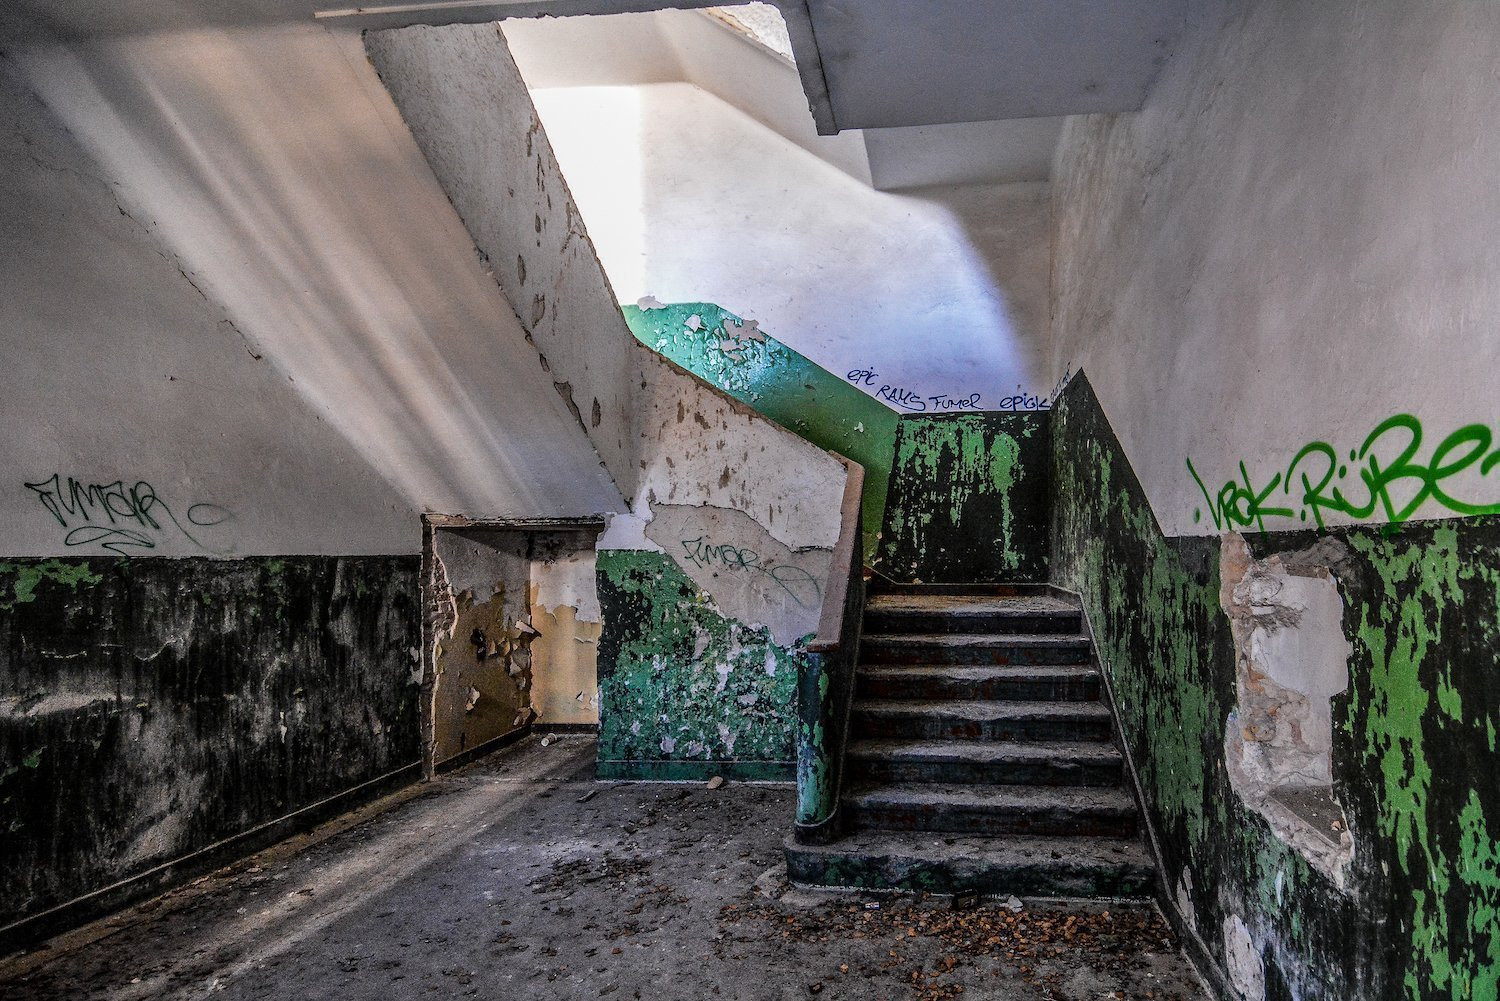 staircase treppen graffiti nazi soviet military base abandoned urbex urban exploring loewen adler kaserne elstal wustermark roter stern kaserne germany lost places